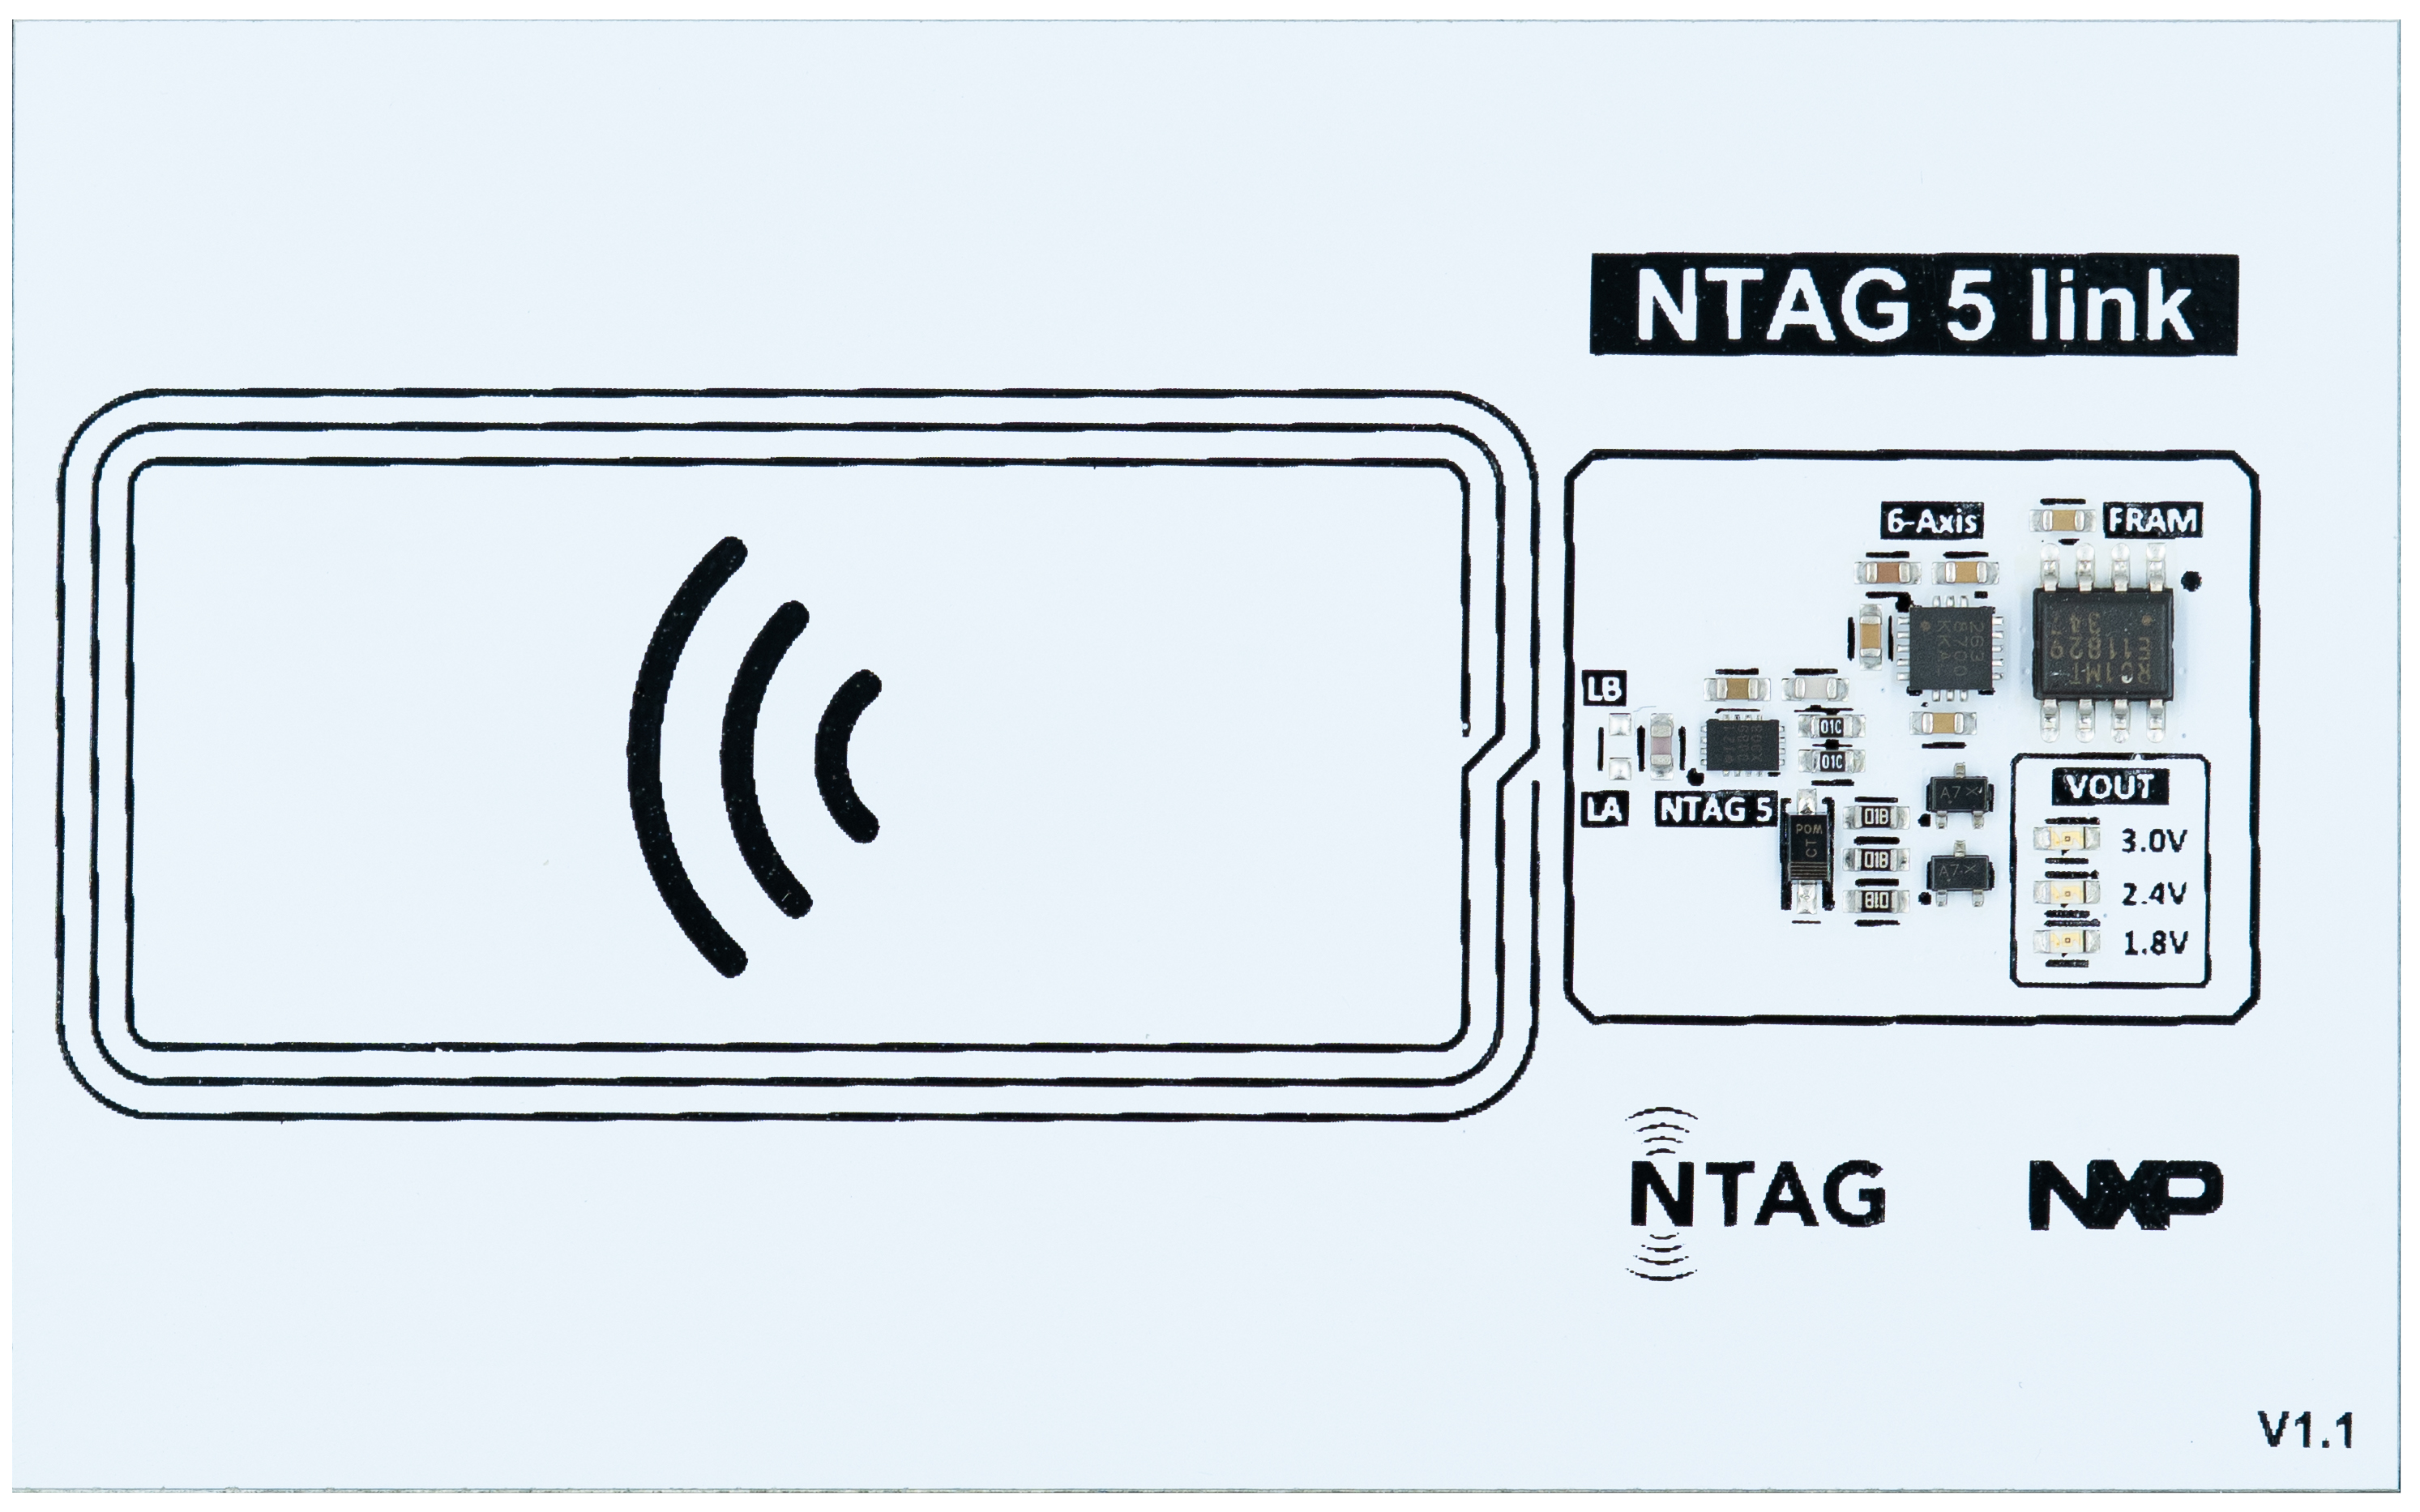 NTAG 5 link demo board